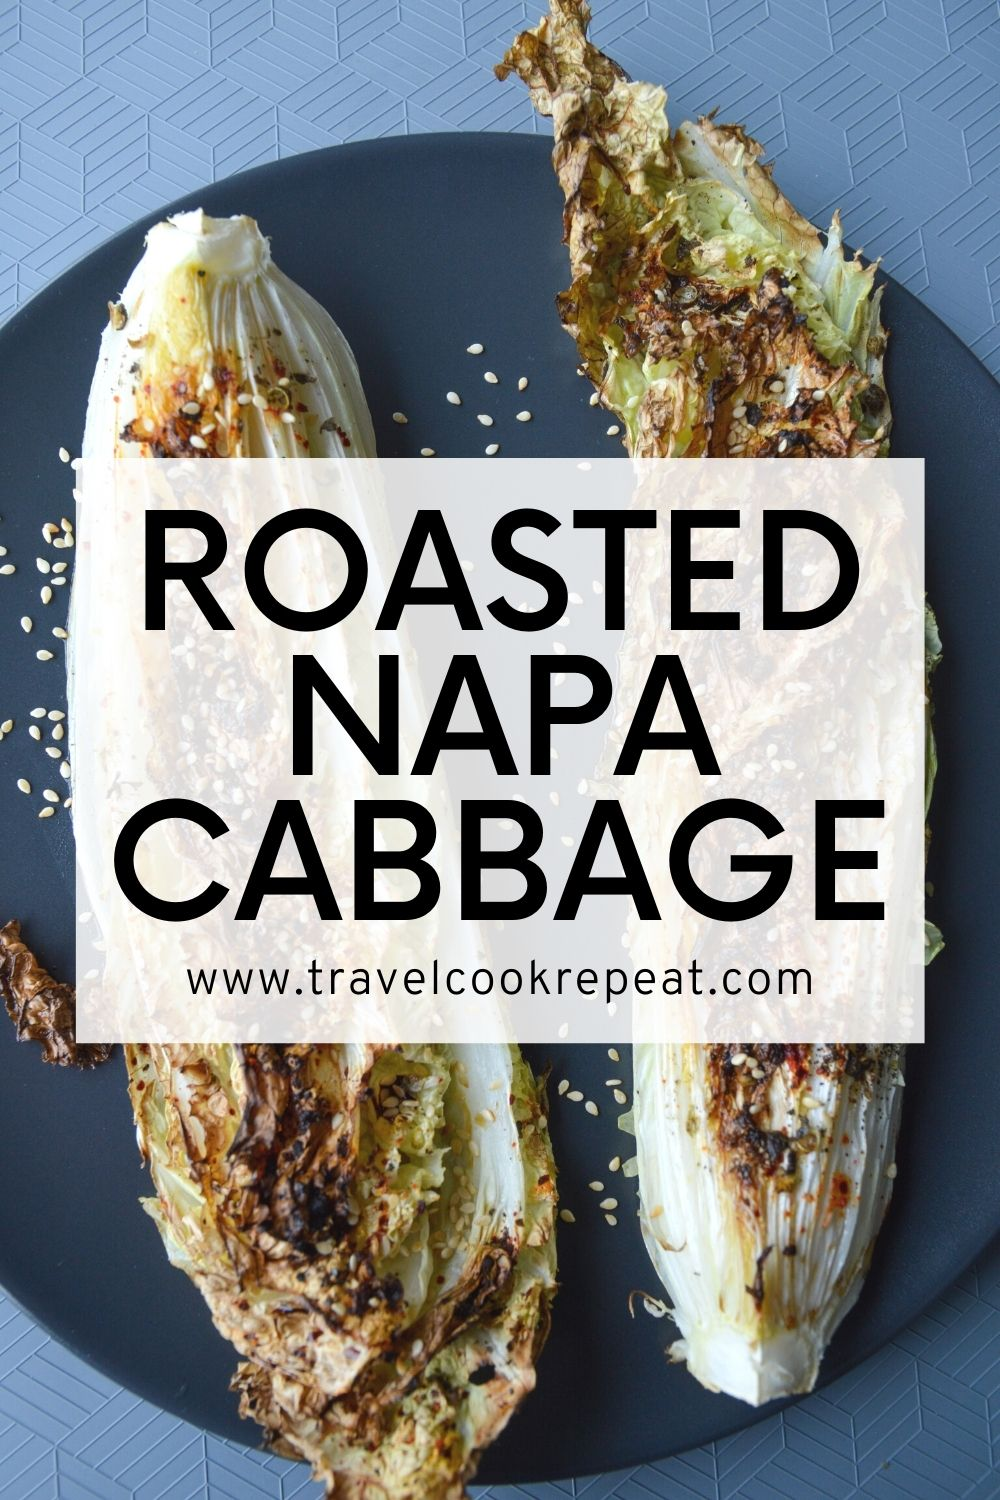 Roasted Napa Cabbage with Sichuan Peppercorns